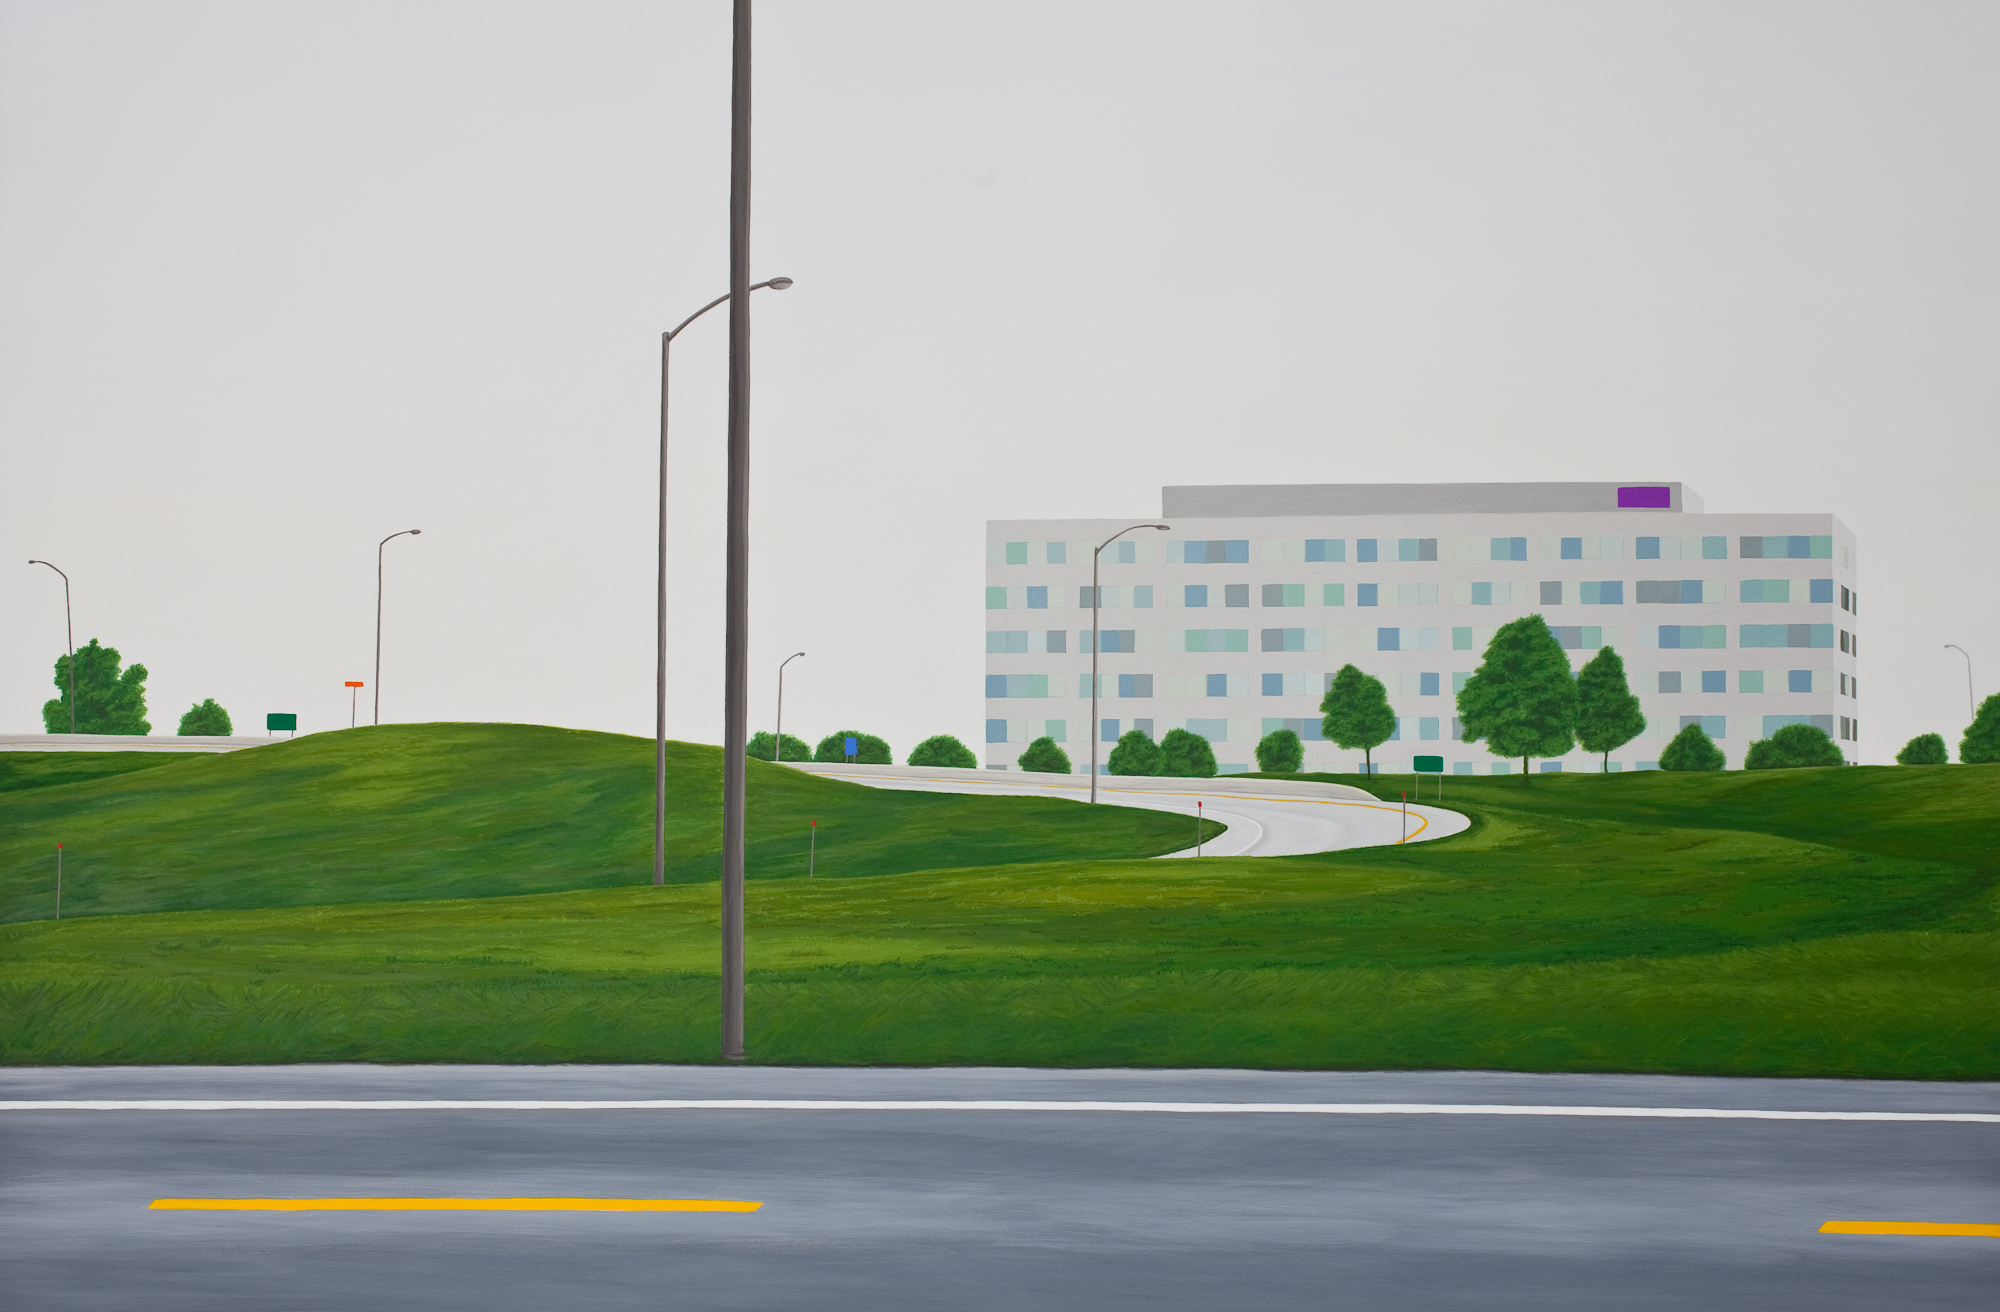 Places Where We Have Been #3, 2014, Gouache on Paper, 21 X 30 inches